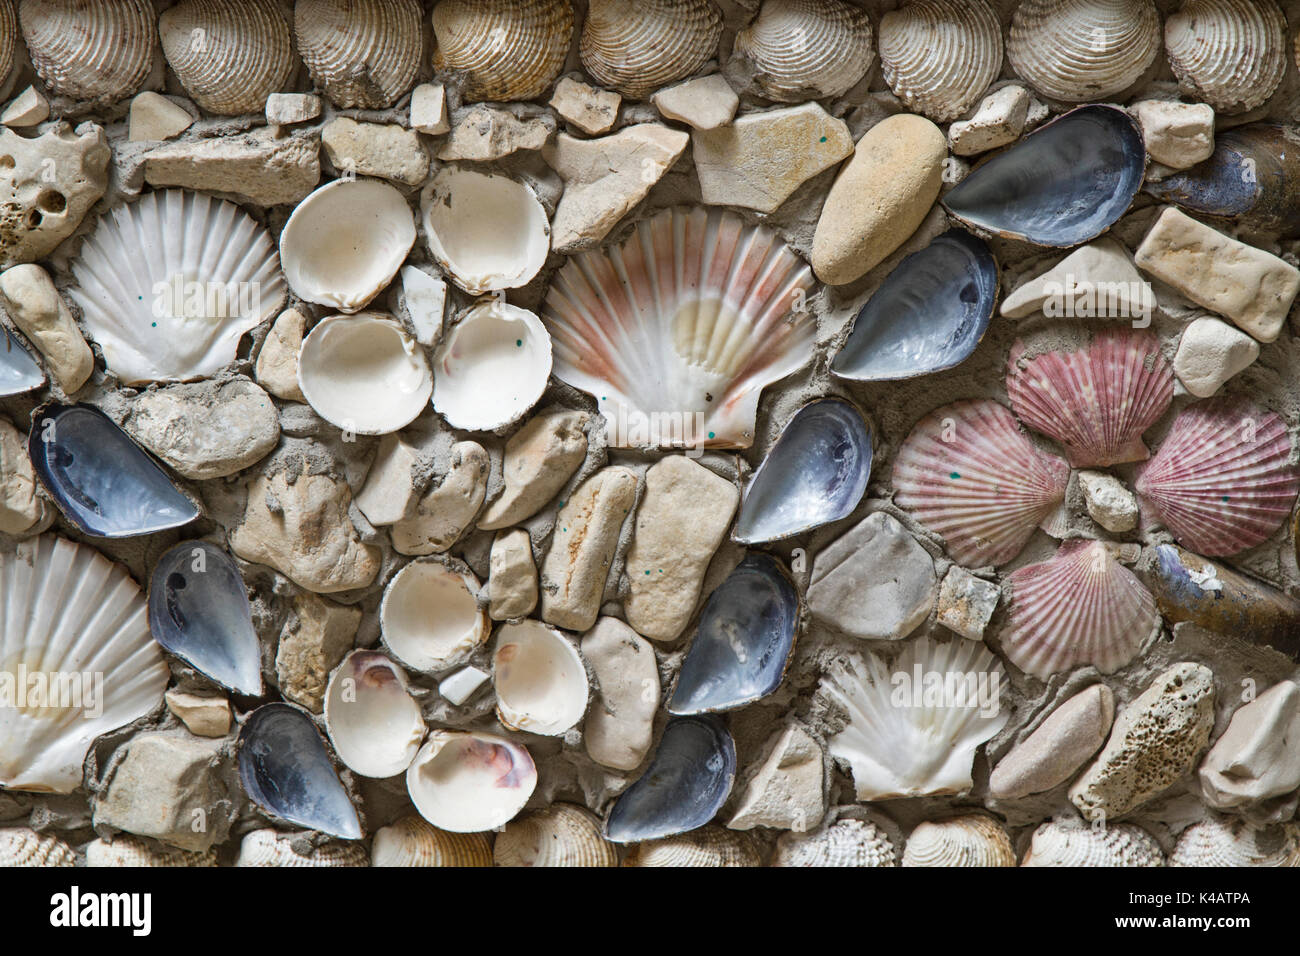 Many Different Types Of Shells Adorn This Wall - Stock Image